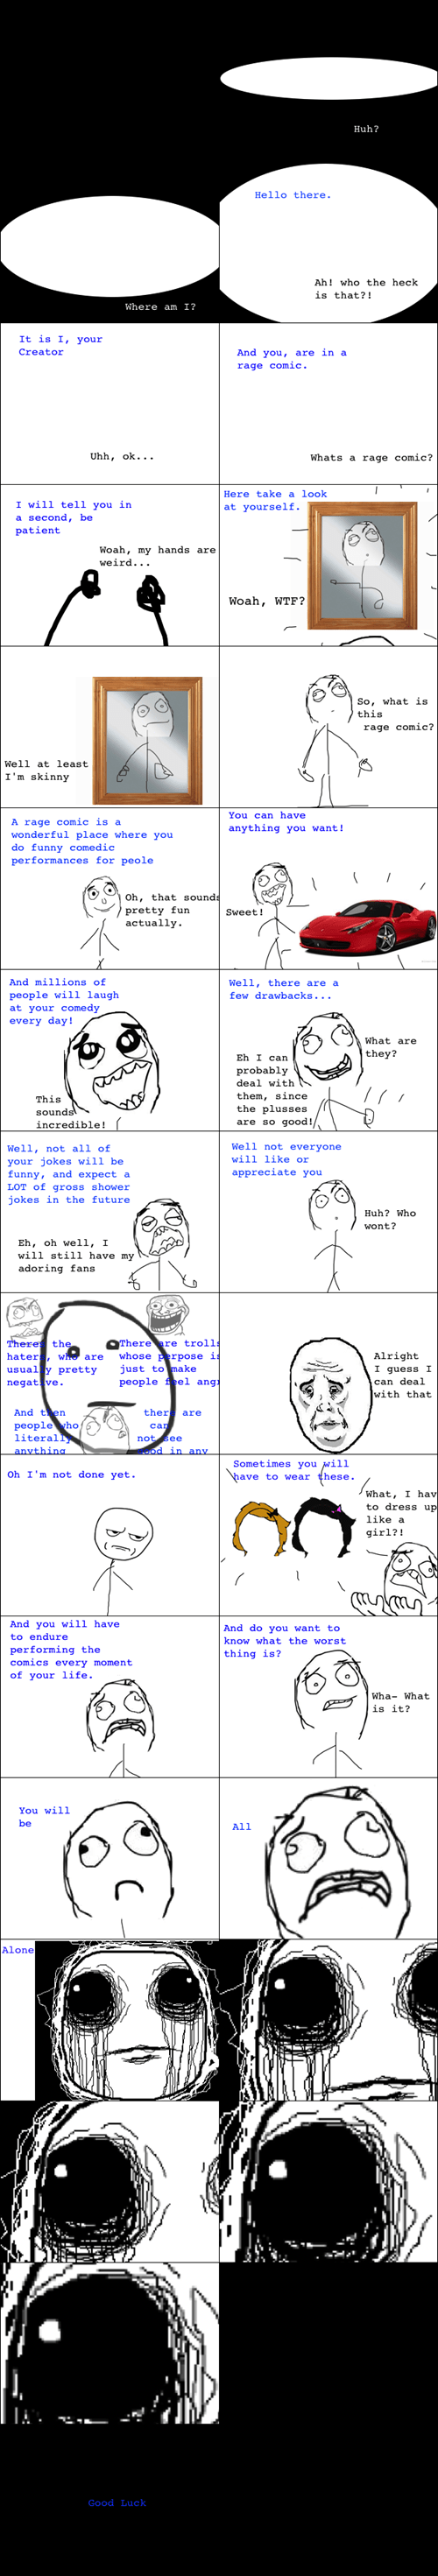 making rage comics,creation